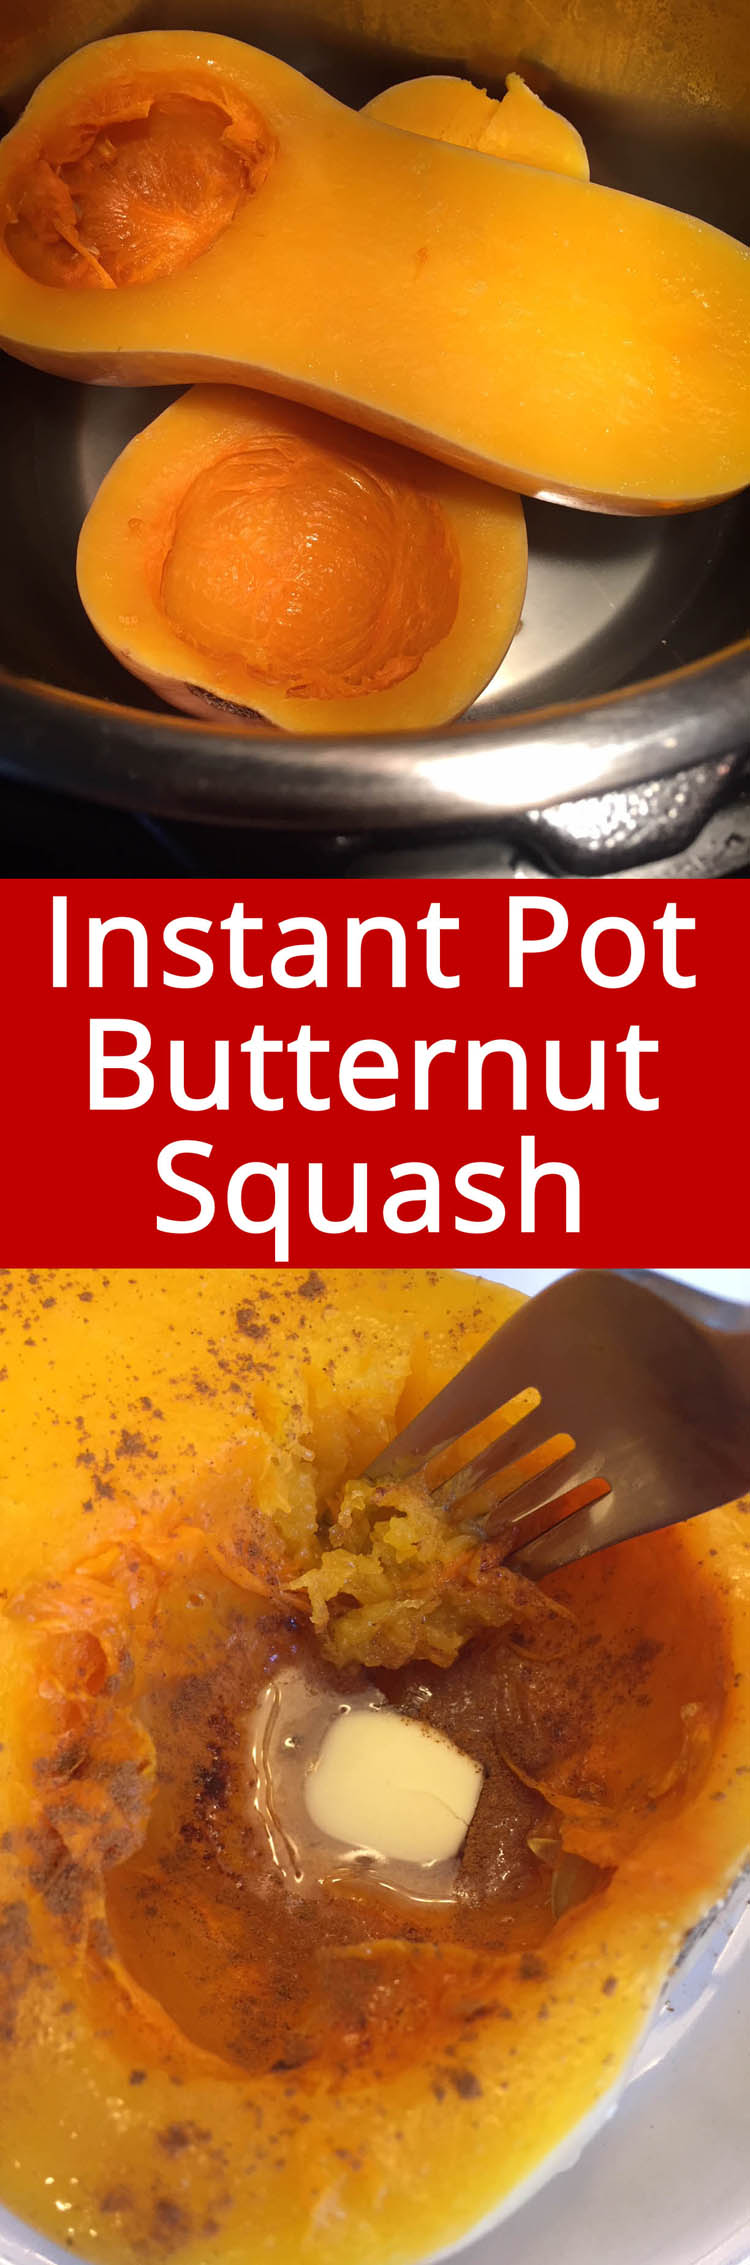 Instant Pot butternut squash is perfectly cooked and so easy!  This is hands down the best method of cooking butternut squash! Delicious!